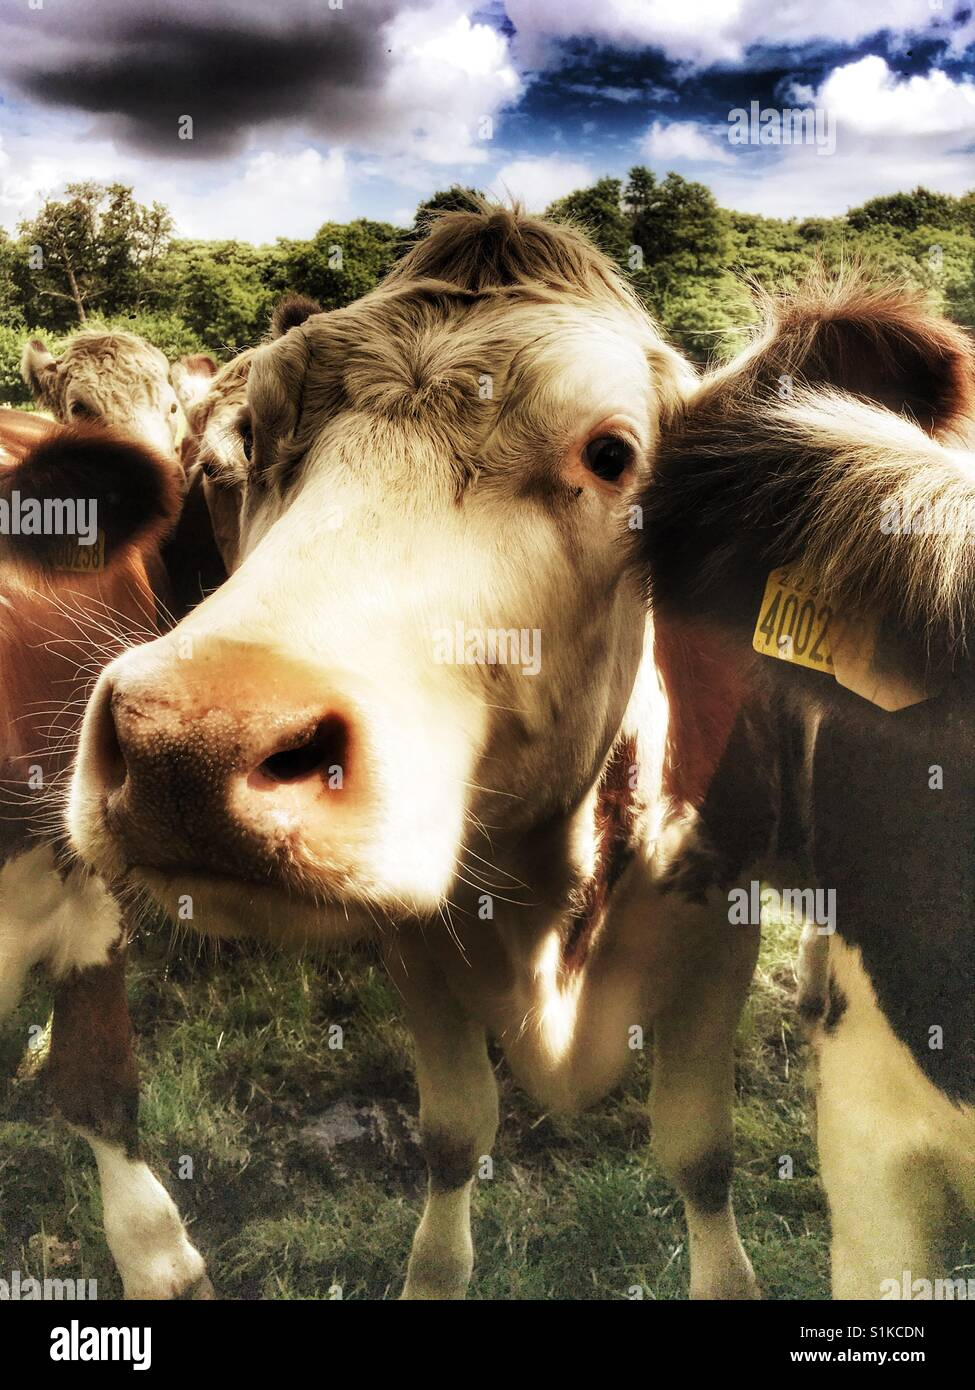 Beef cattle England - Stock Image